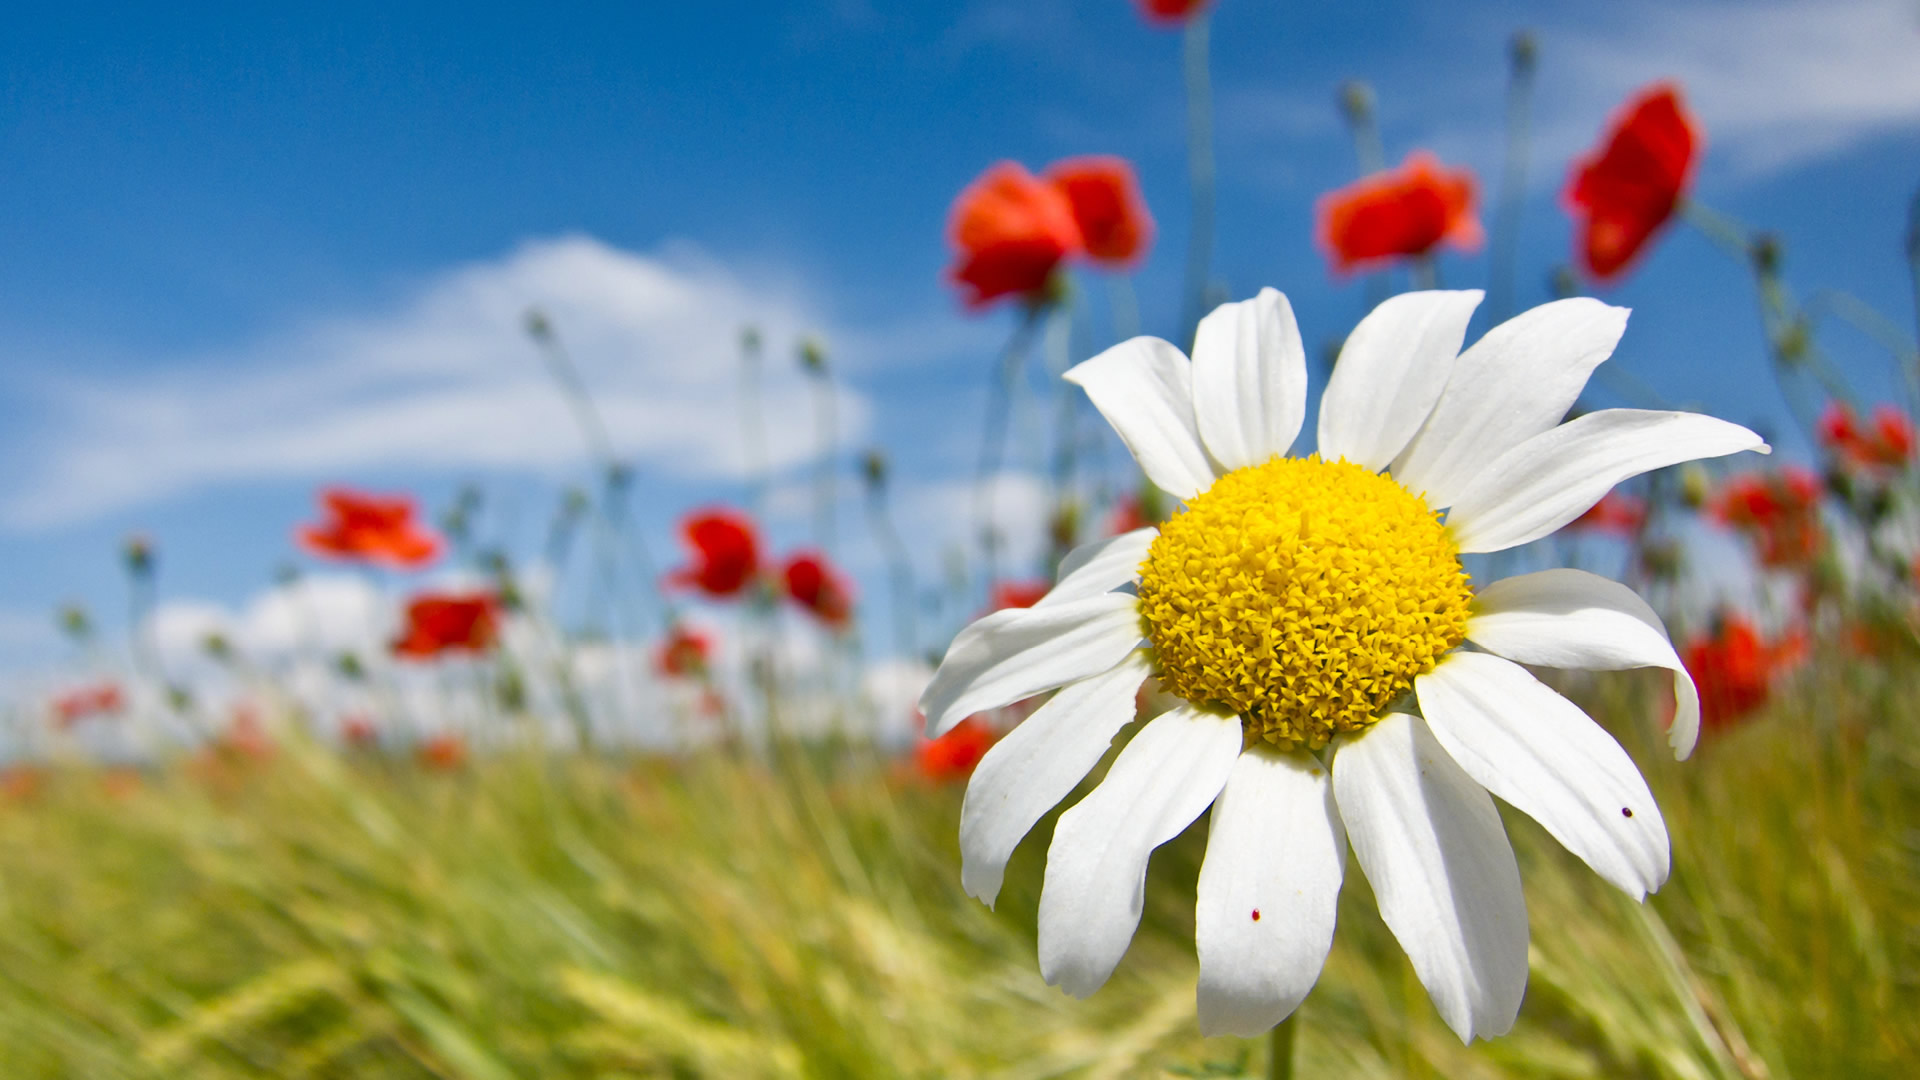 Spring Flowers Wallpapers in Red Yellow for Desktop Backgrounds 1920x1080